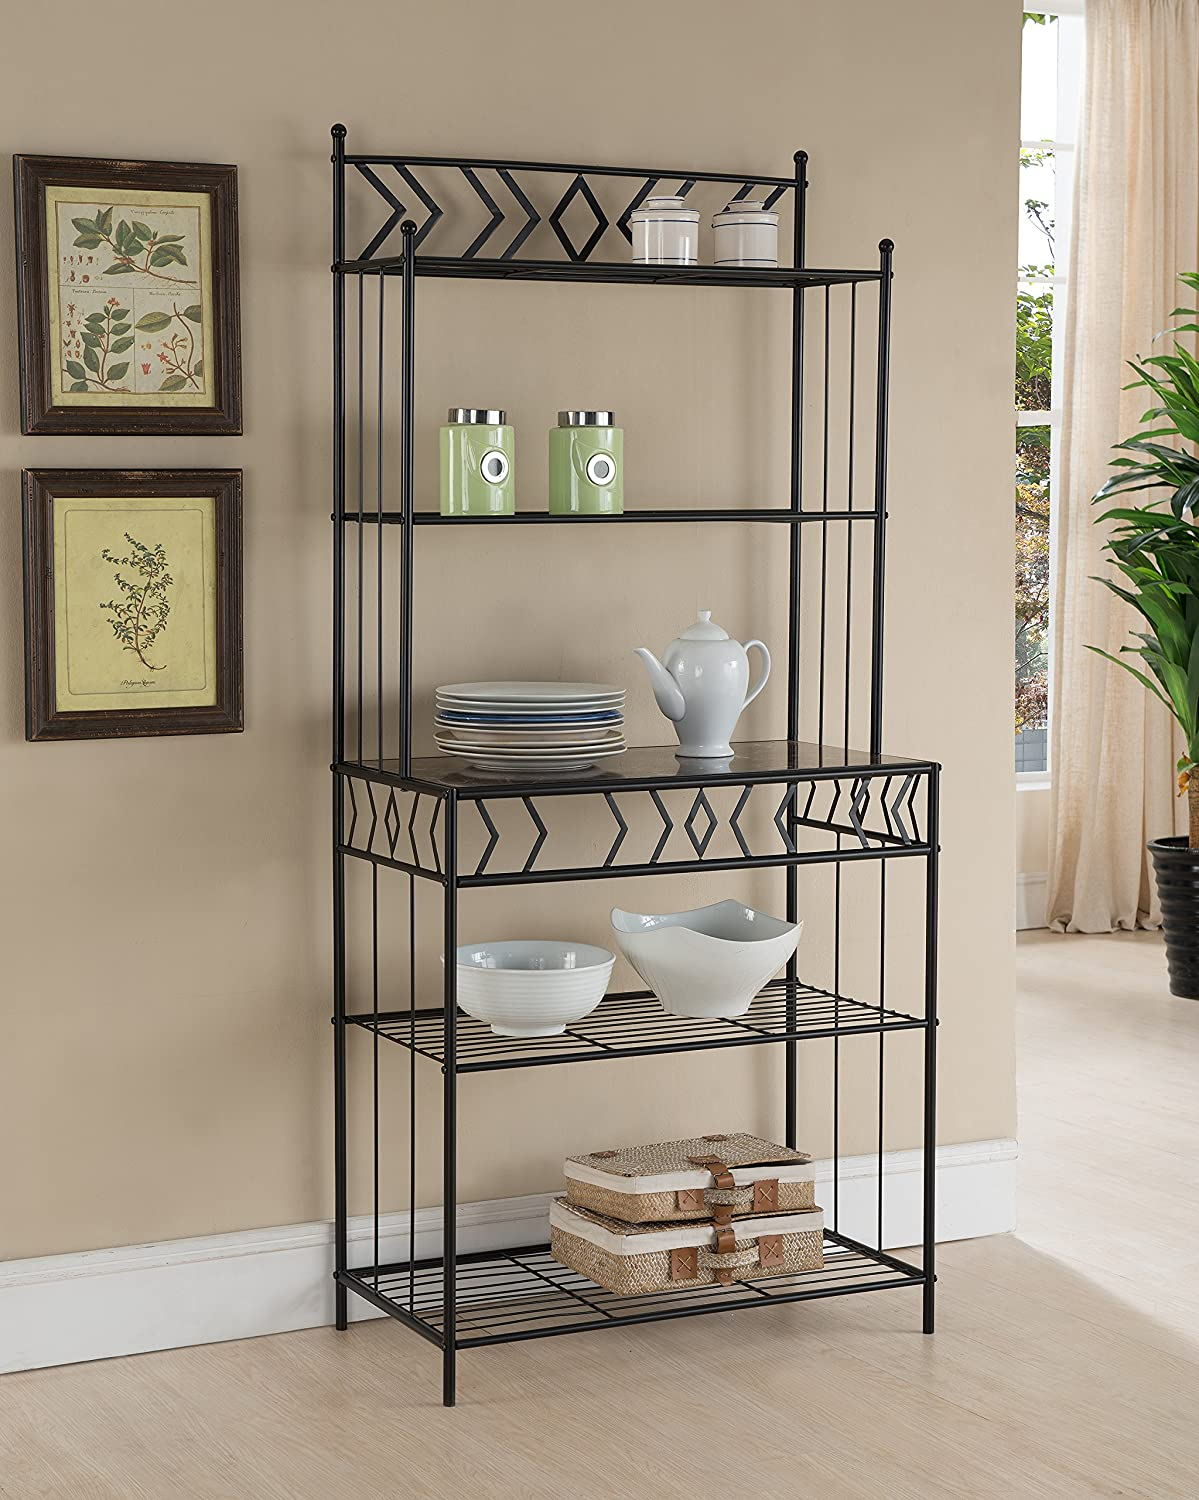 Bakers rack decorating ideas - Kings Brand Furniture Metal With Marble Finish 5 Tier Bakers Rack Black